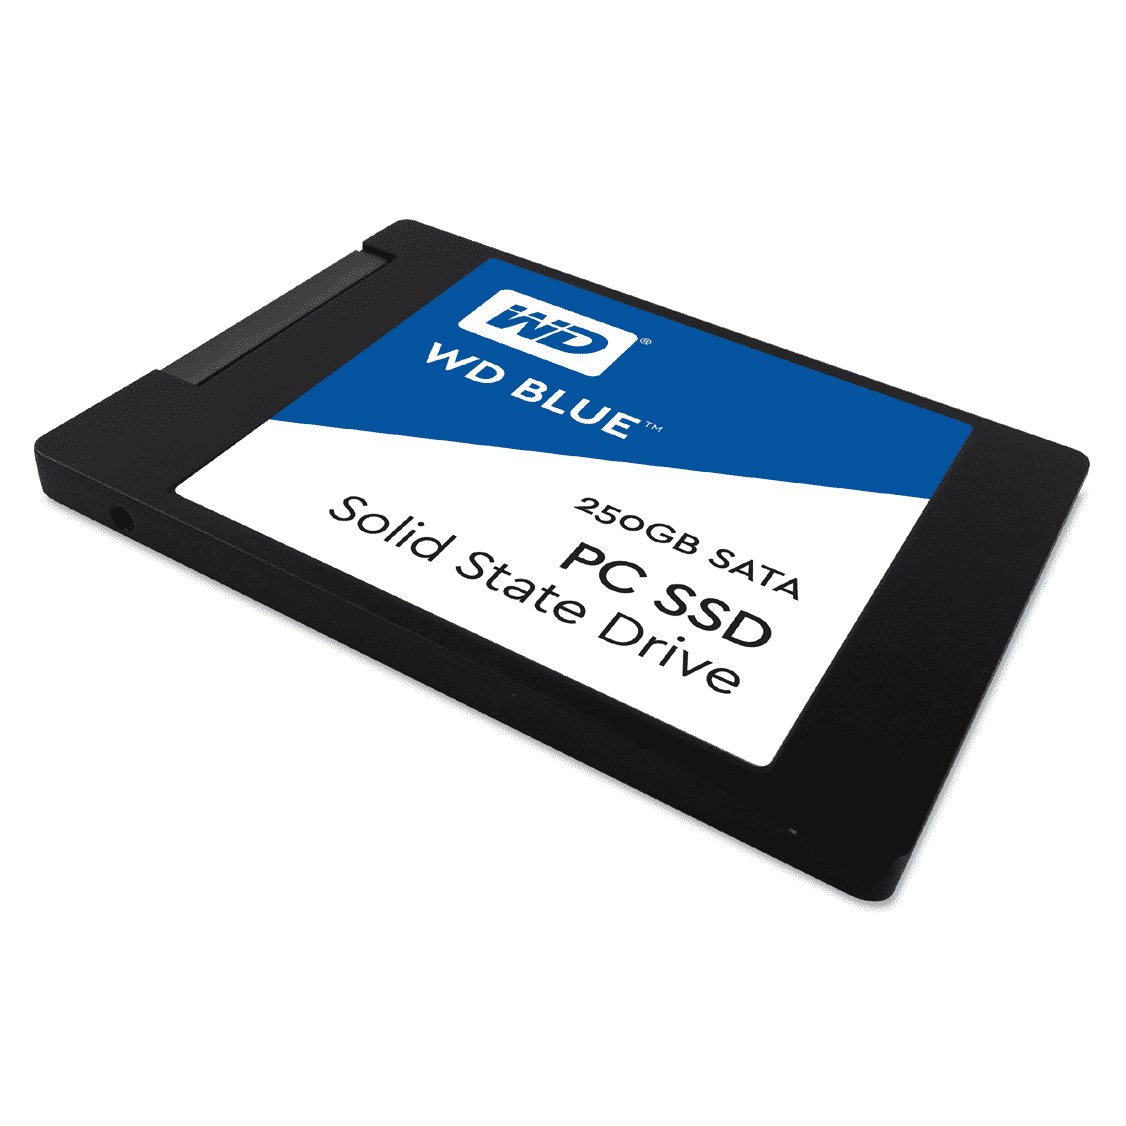 Supercheap Ssds Top New Review Kingston Ssd Now Uv400 Series 240gb Suv400s37 240g The First Wd Are Effectively Rebadged Updates Of Current Sandisk Technologies With Branding Applied Ultra Ii Back Over Page And